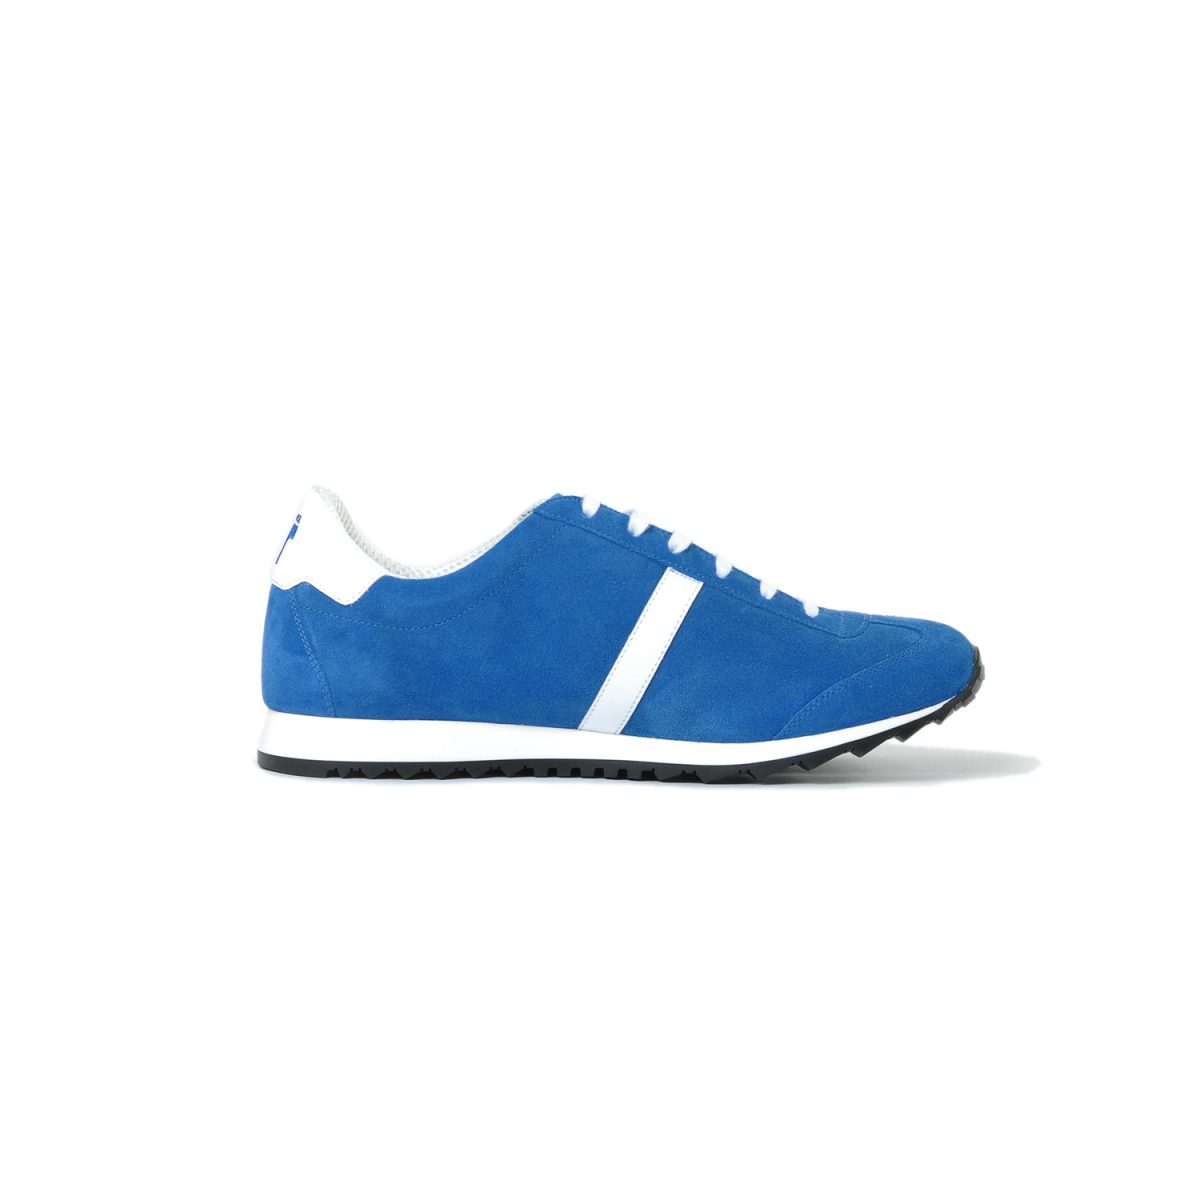 Tisza shoes - Martfű - Royal-white